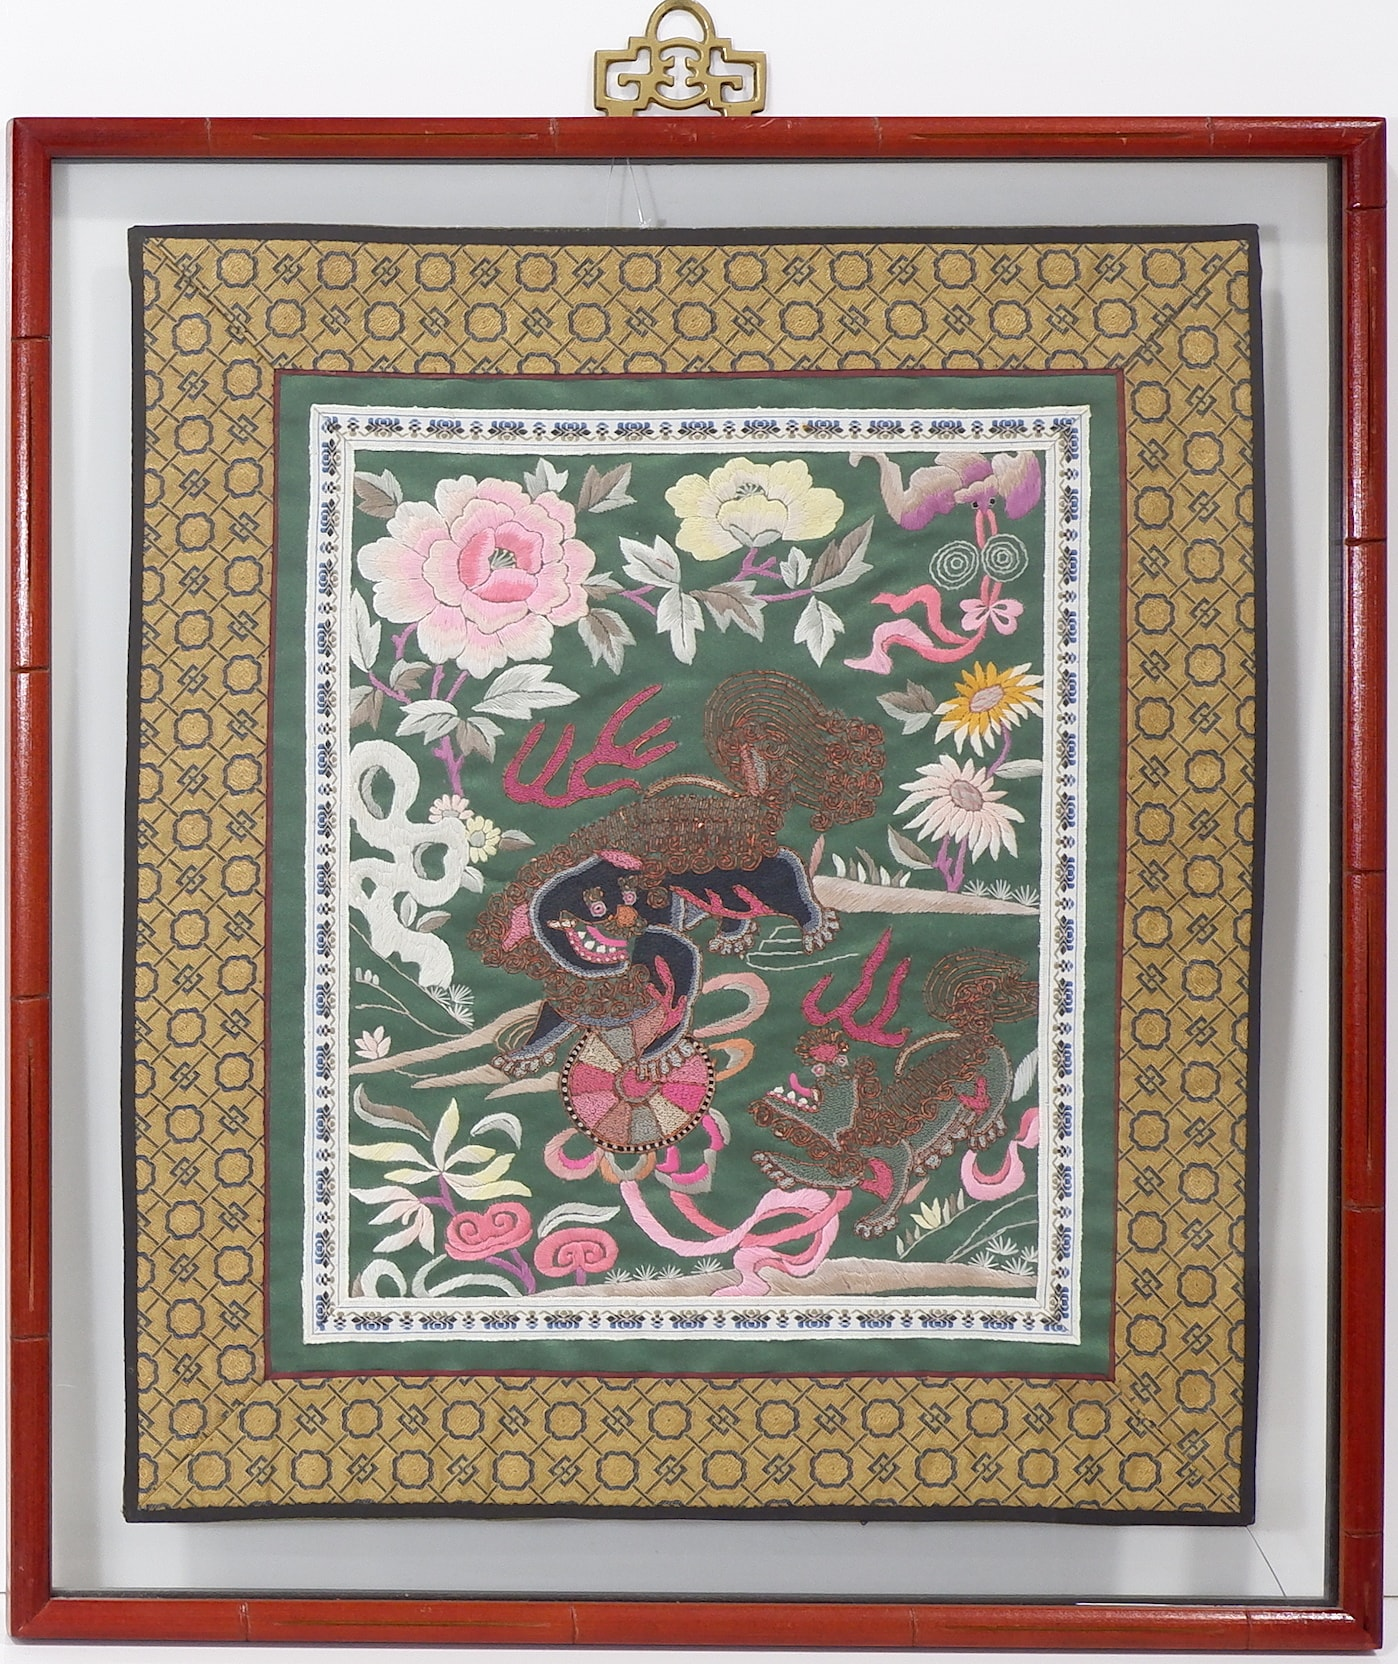 'Two Framed Chinese Silk Needlework Embroideries'